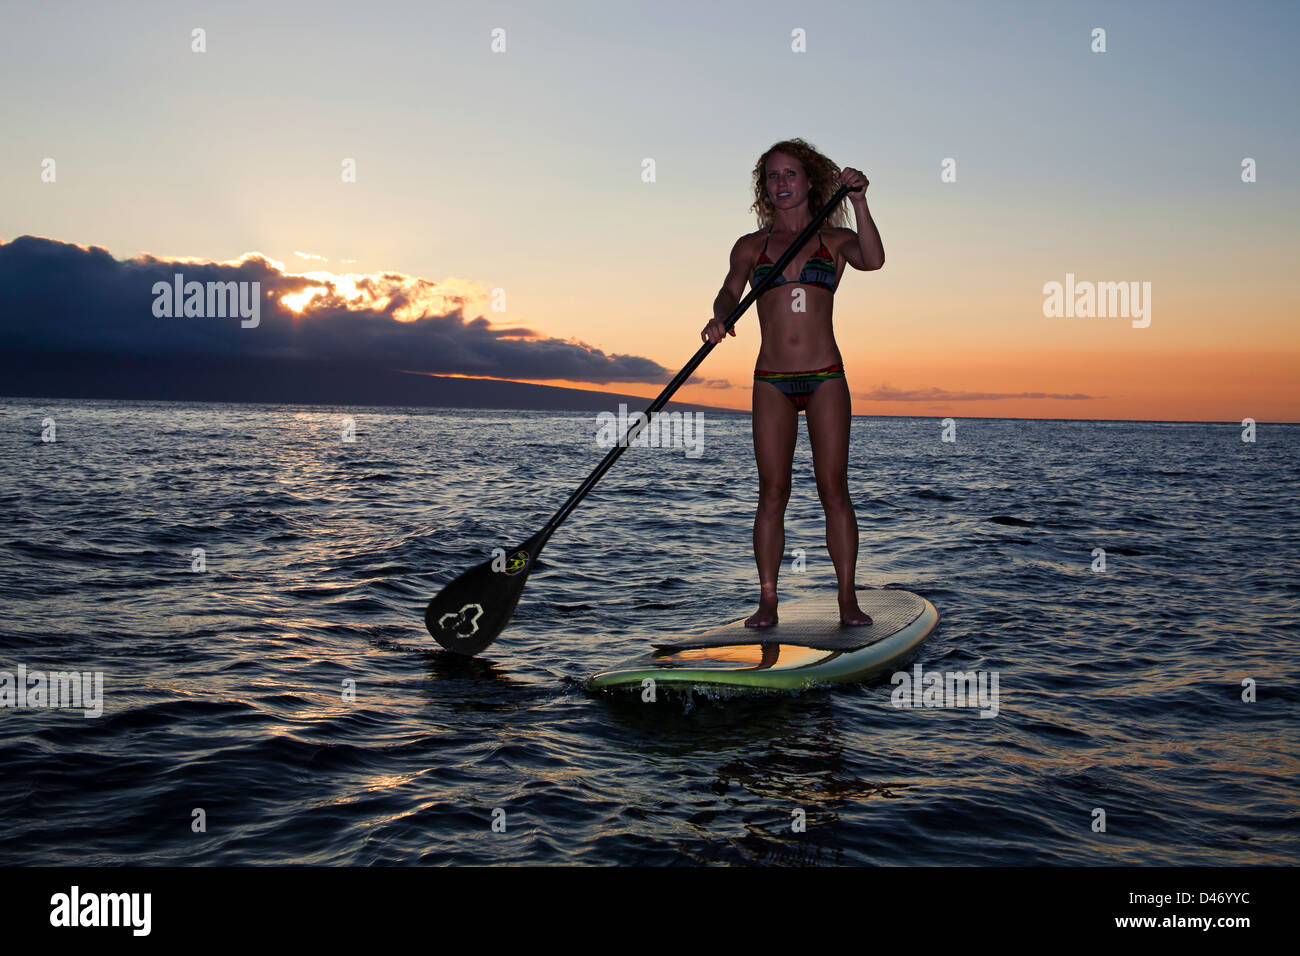 Stand up paddle board ornament - Surf Instructor Tara Angioletti At Sunset On A Stand Up Paddle Board Off Canoe Bearch